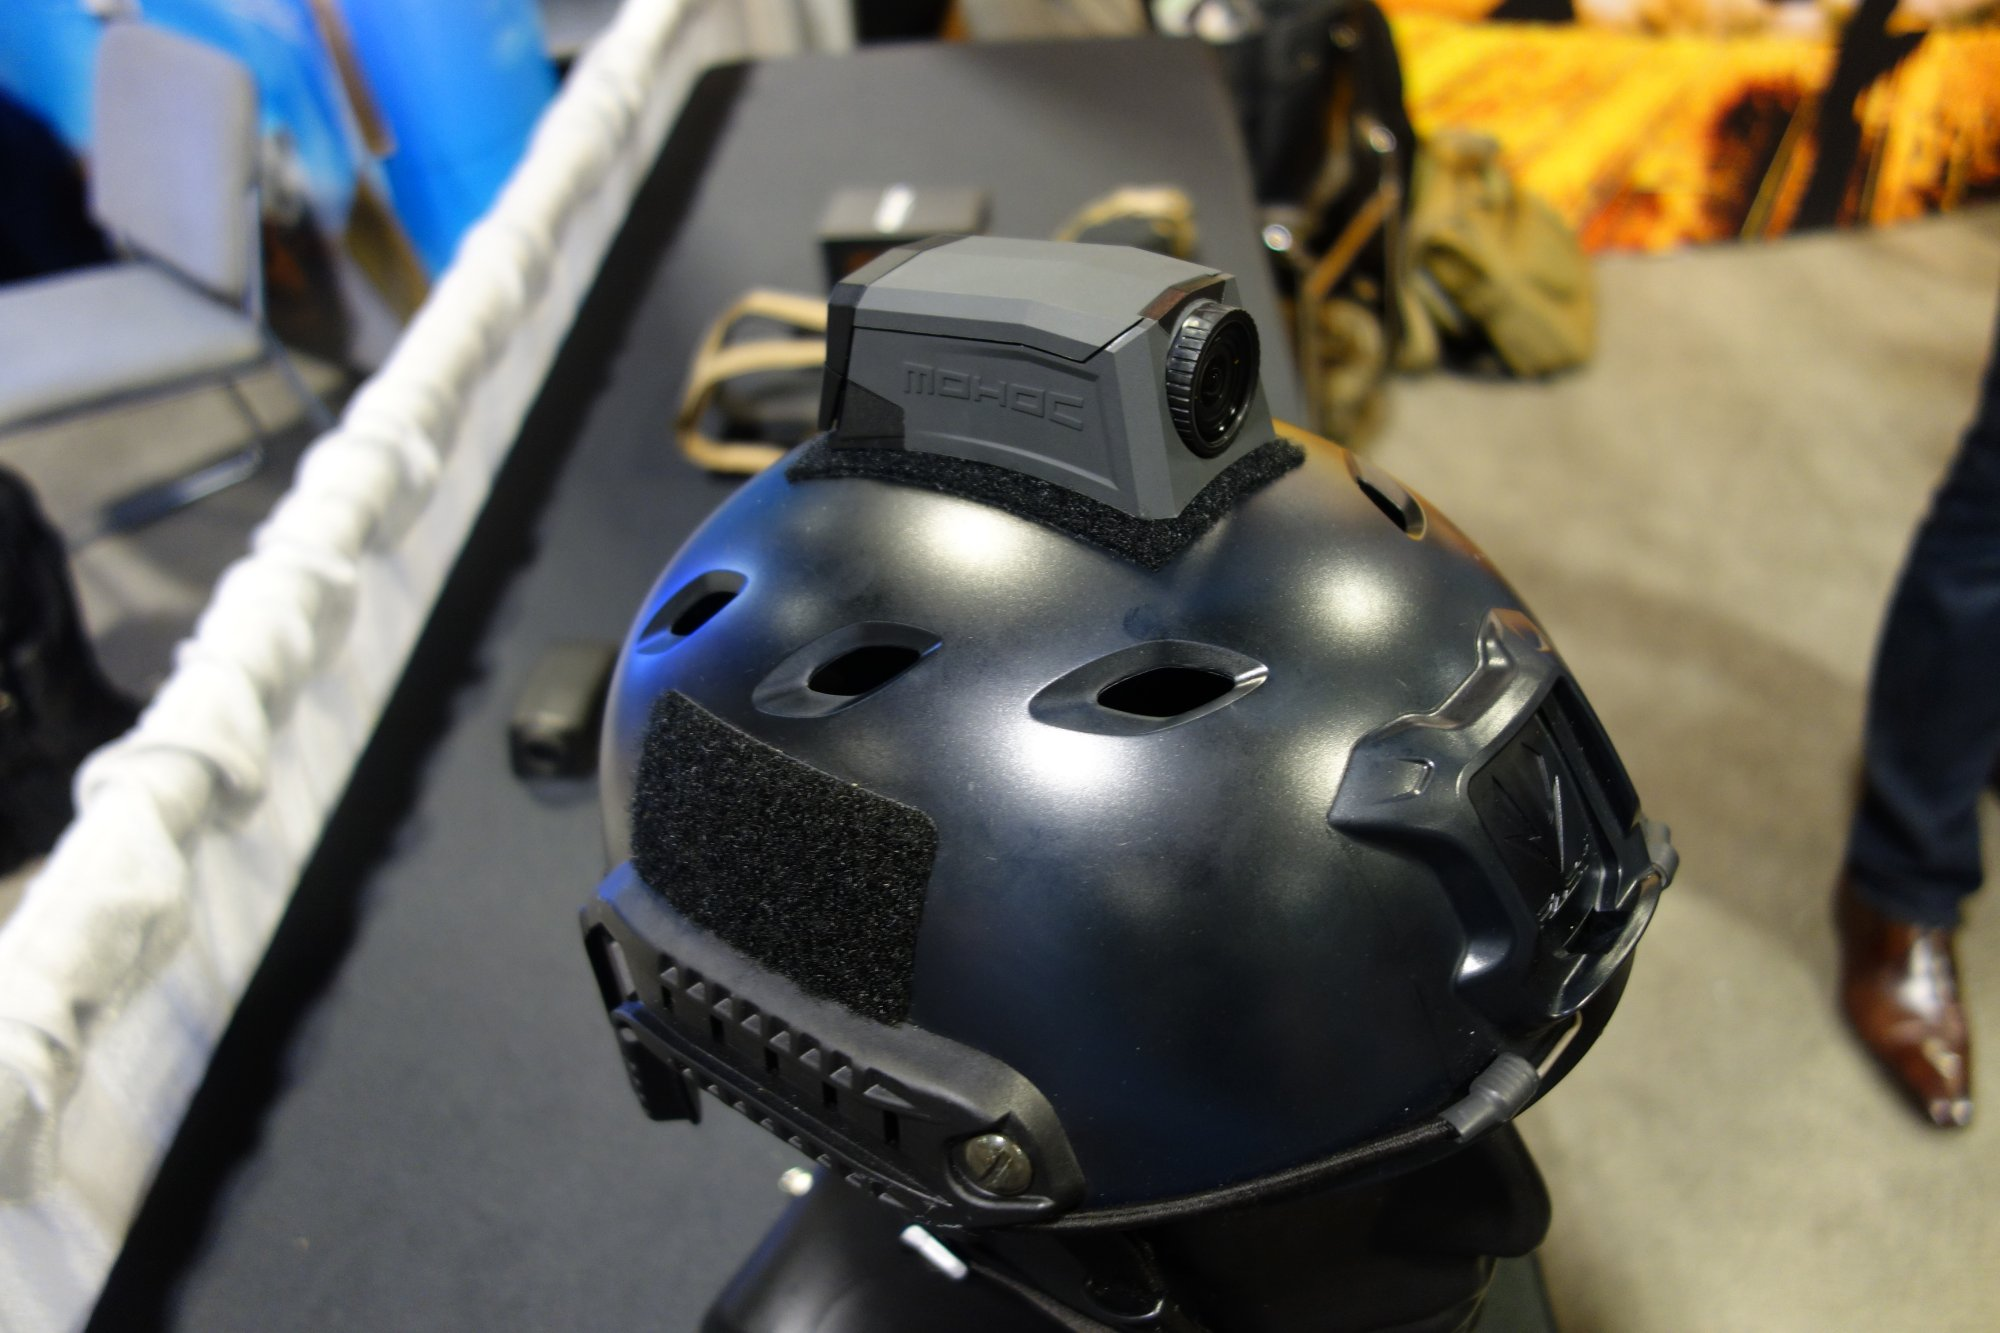 Camera System Low Profile Form Fitting Ruggedized And Waterproof Helmet Mounted Provides Durable HD Video Recording 1080P 60 FPM Capability